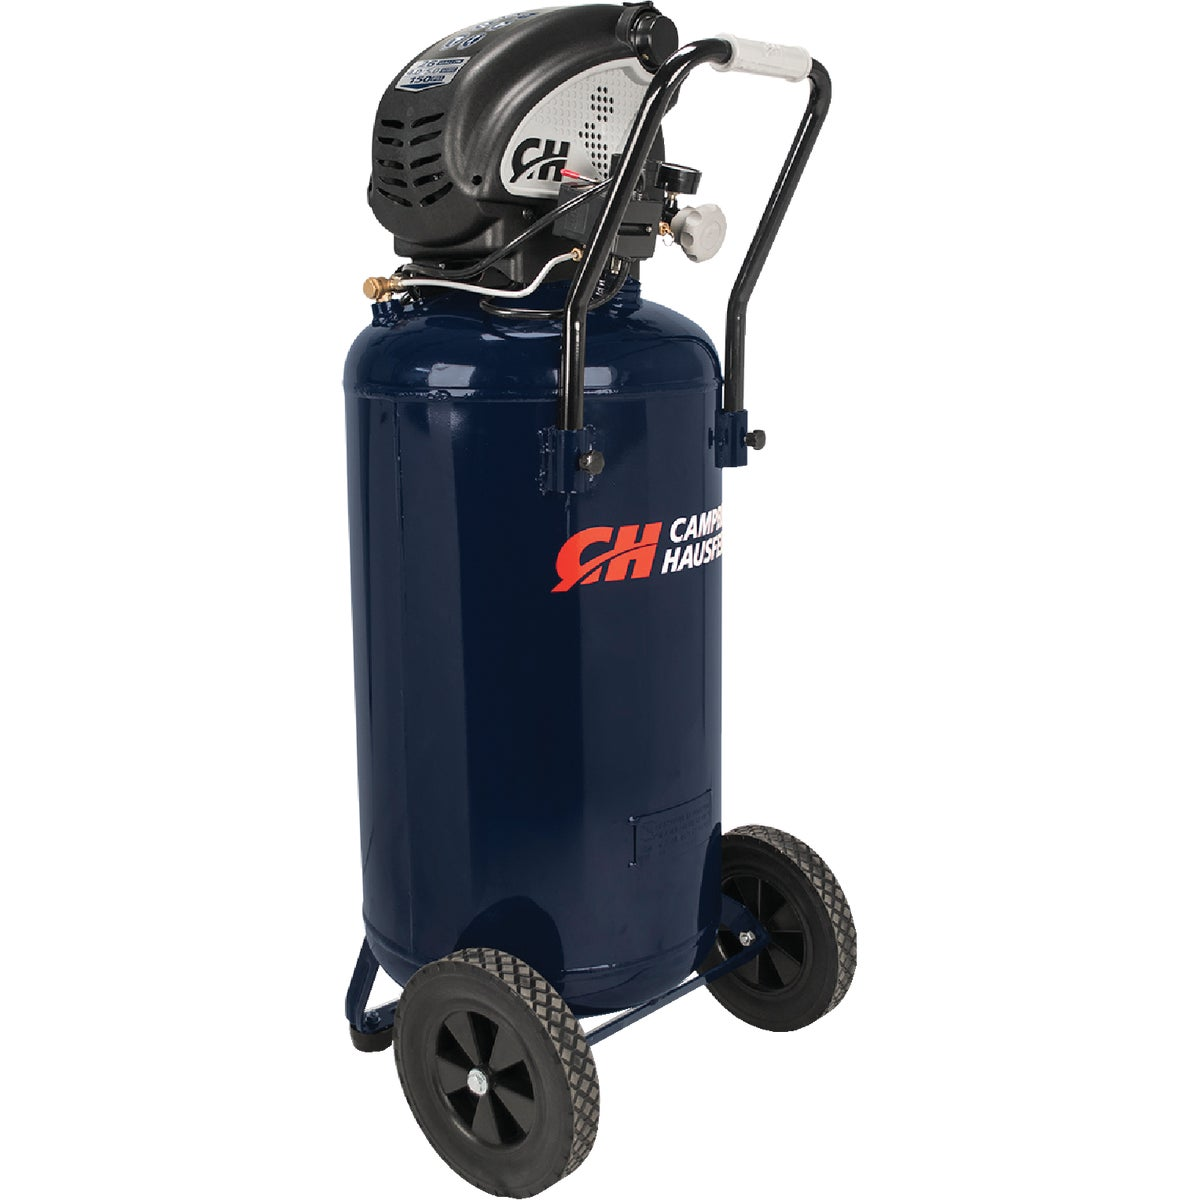 1.7HP 26G AIR COMPRESSOR - WL6111 by Campbell Hausfeld Co